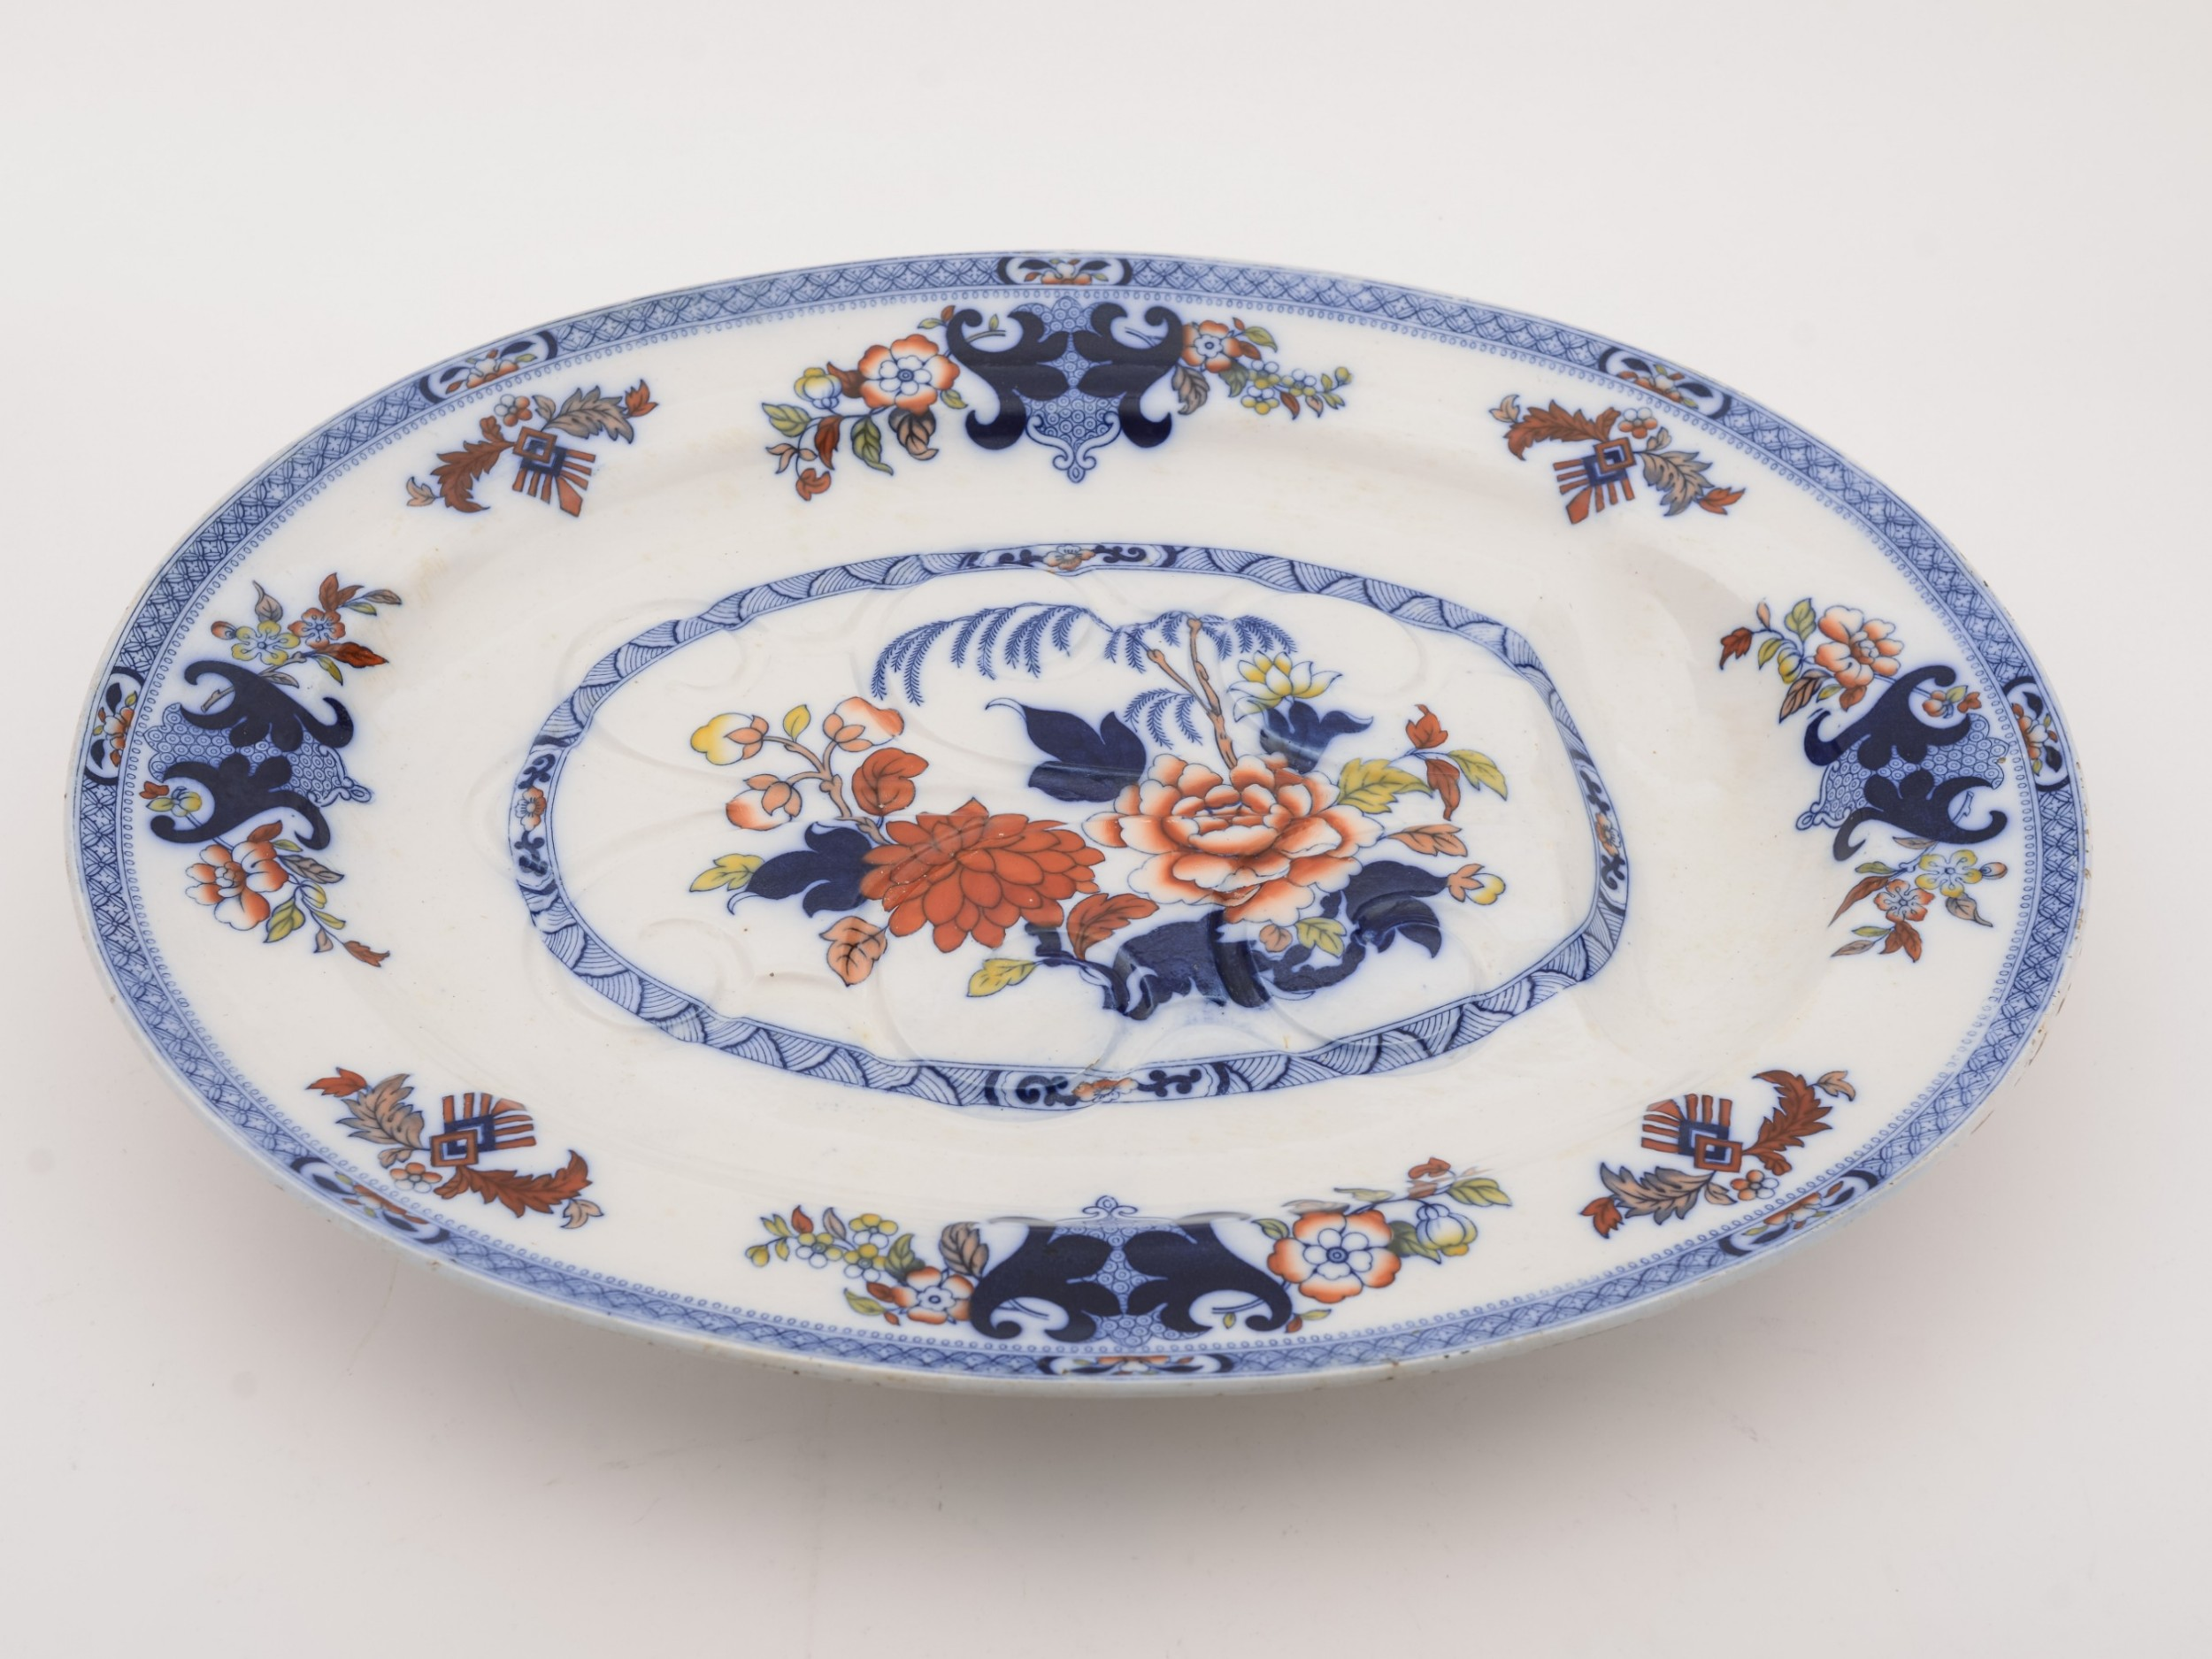 large minton well and tree serving dish circa 1900